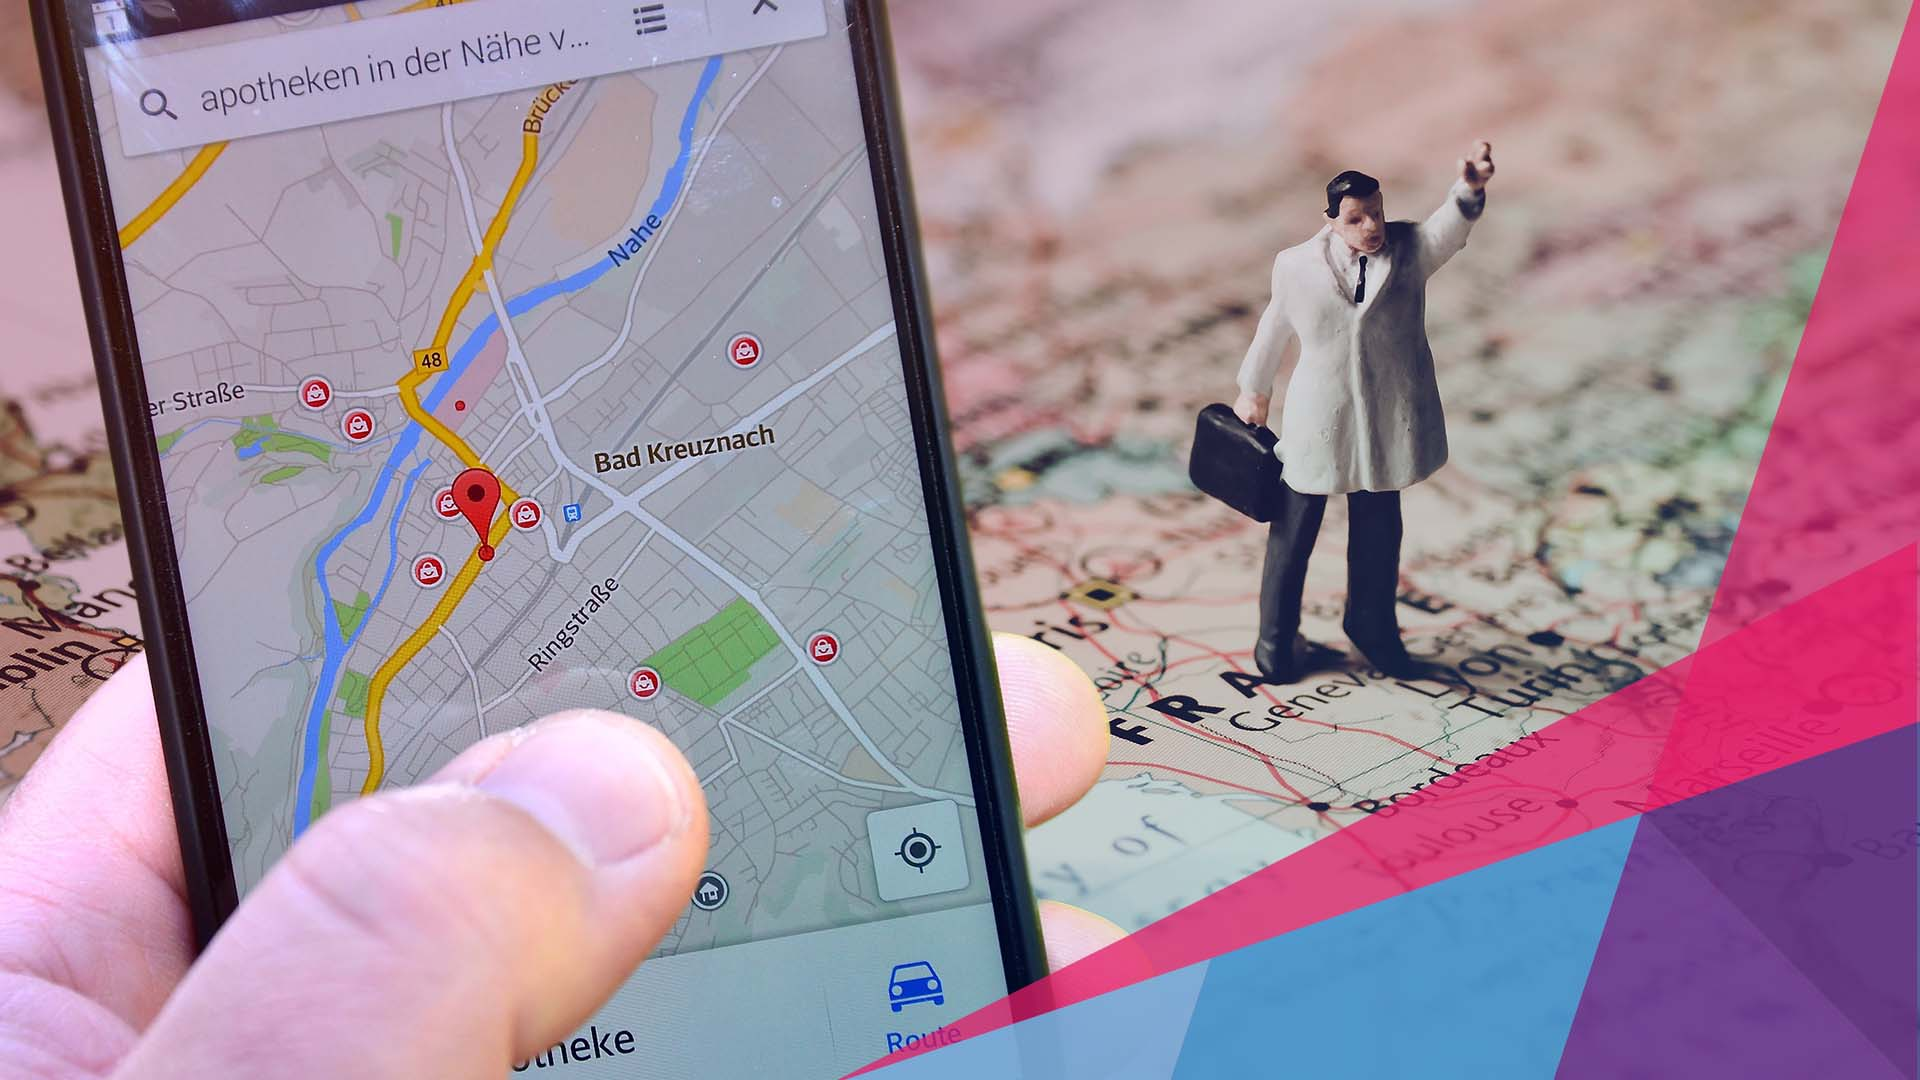 Why business should incorporate location-based marketing and proximity marketing in their business strategy